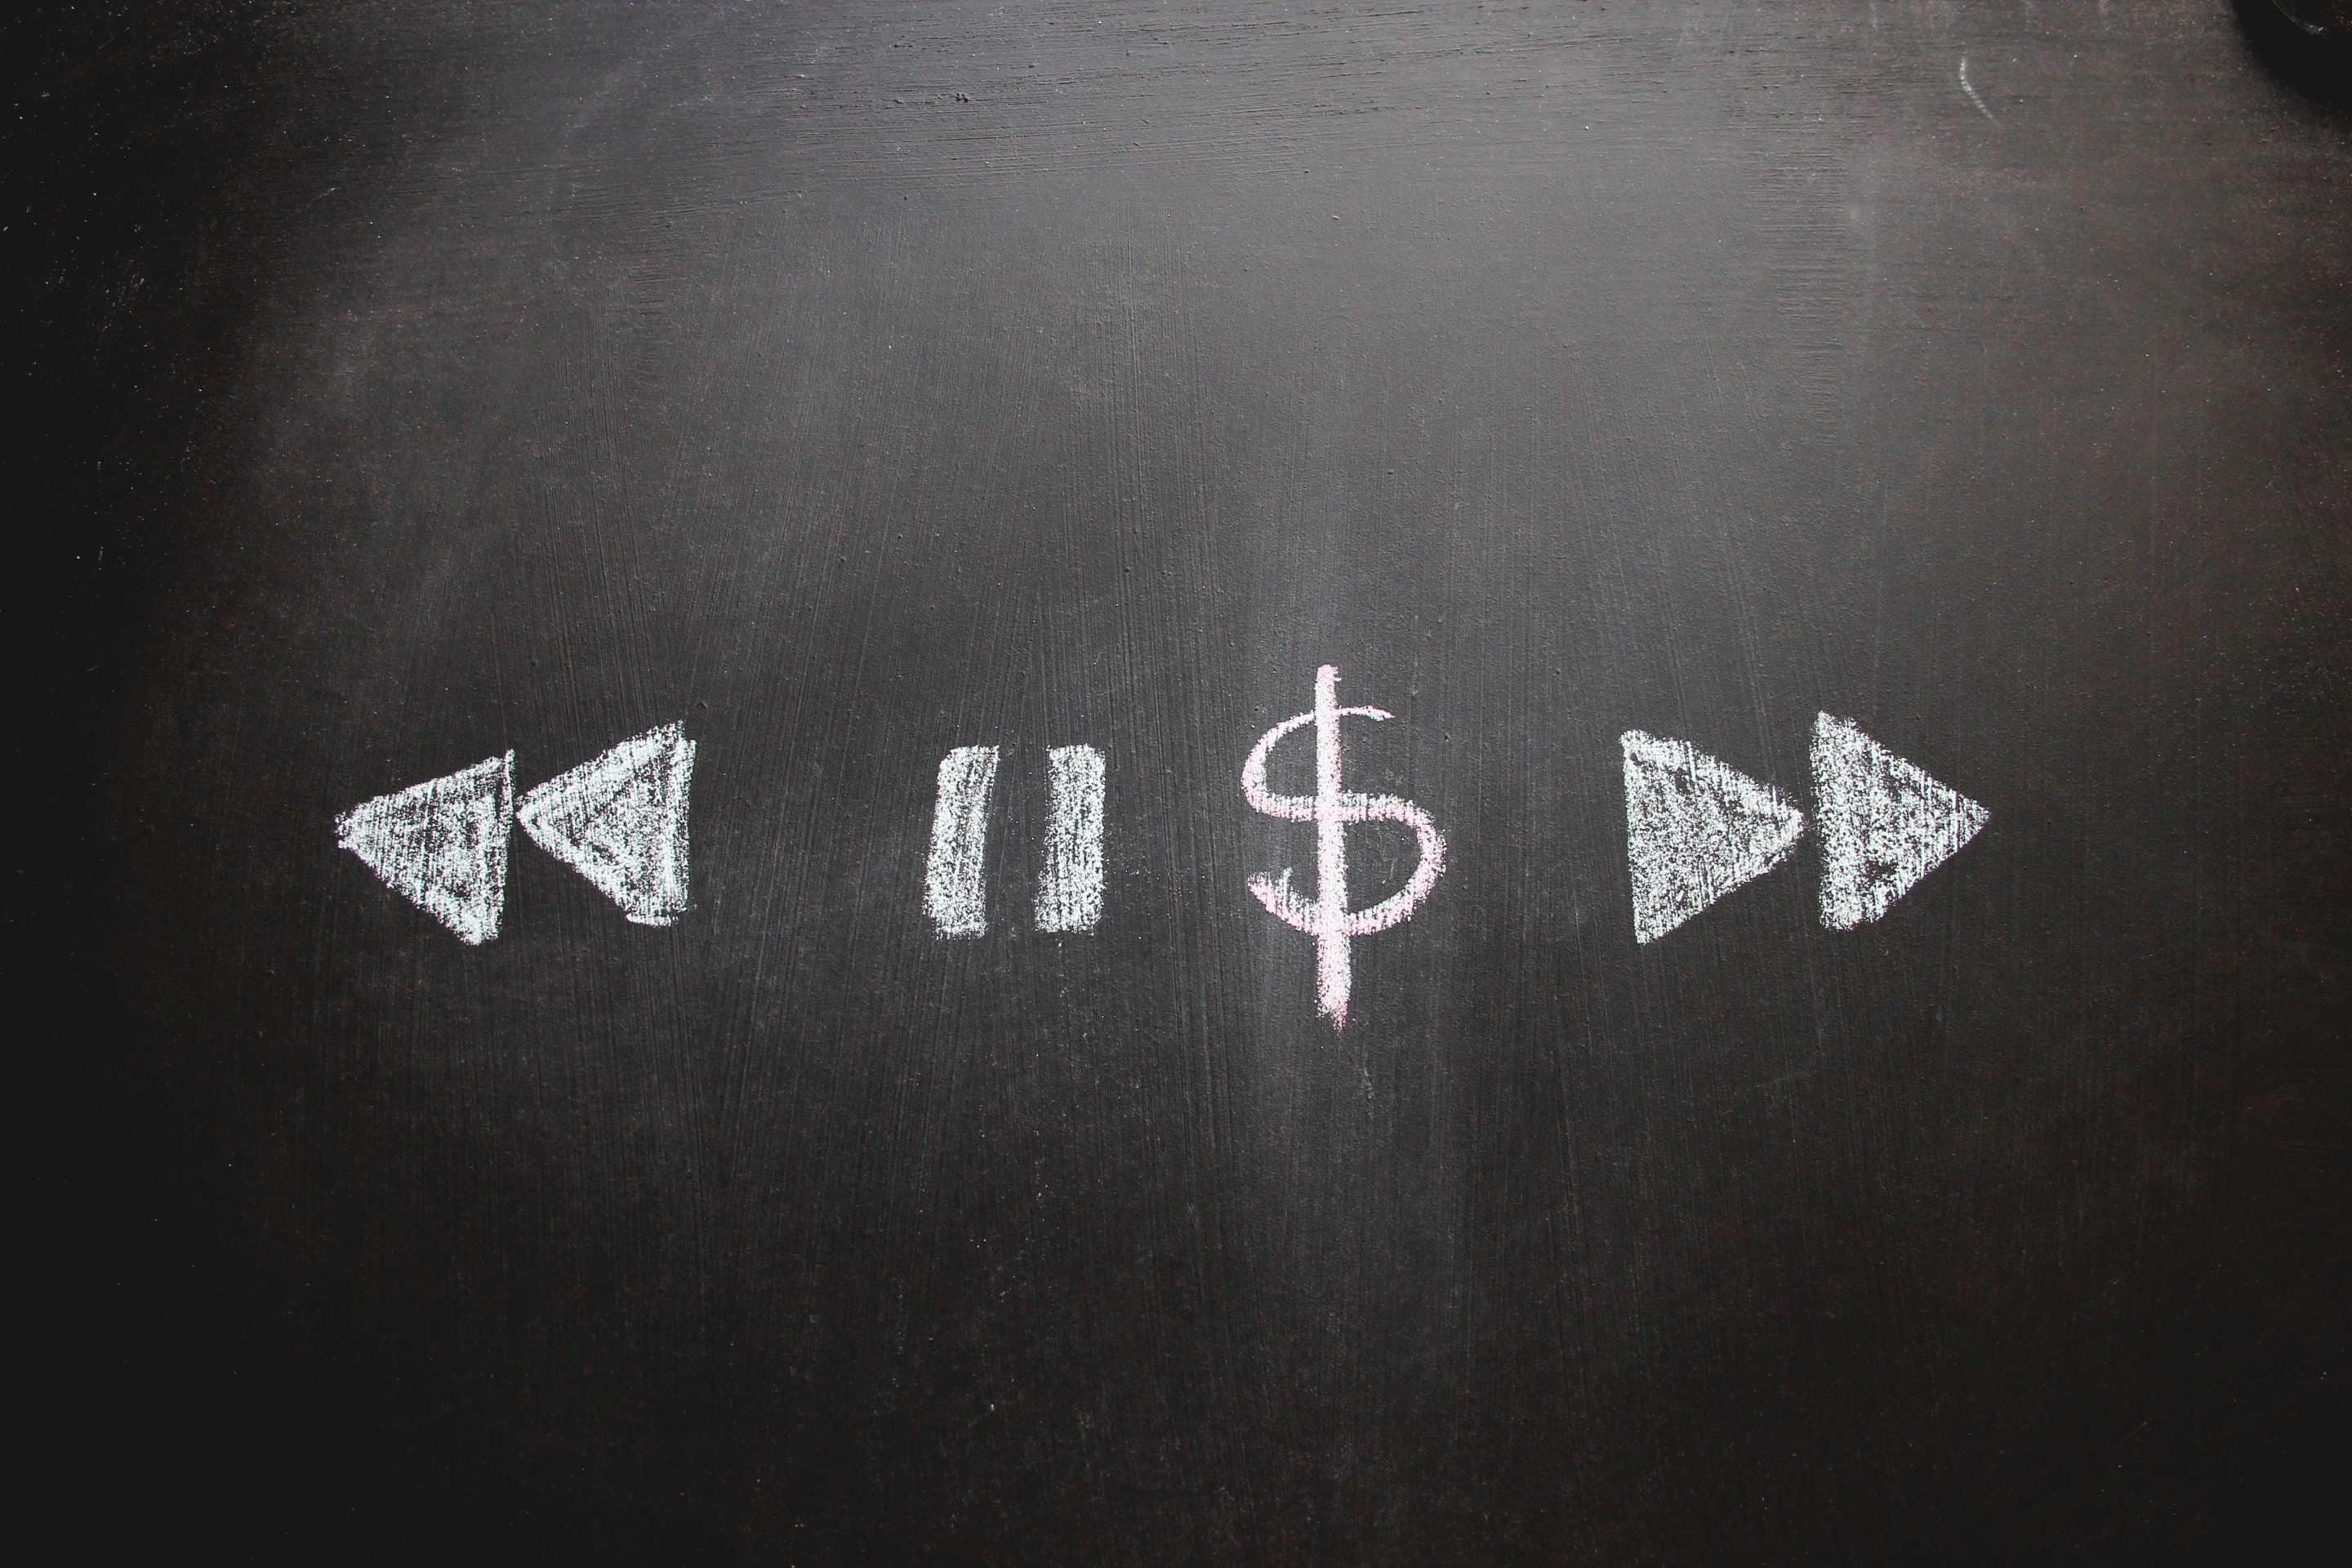 A dollar sign amongst pause, rewind and fast-forward signs. Image: iStock